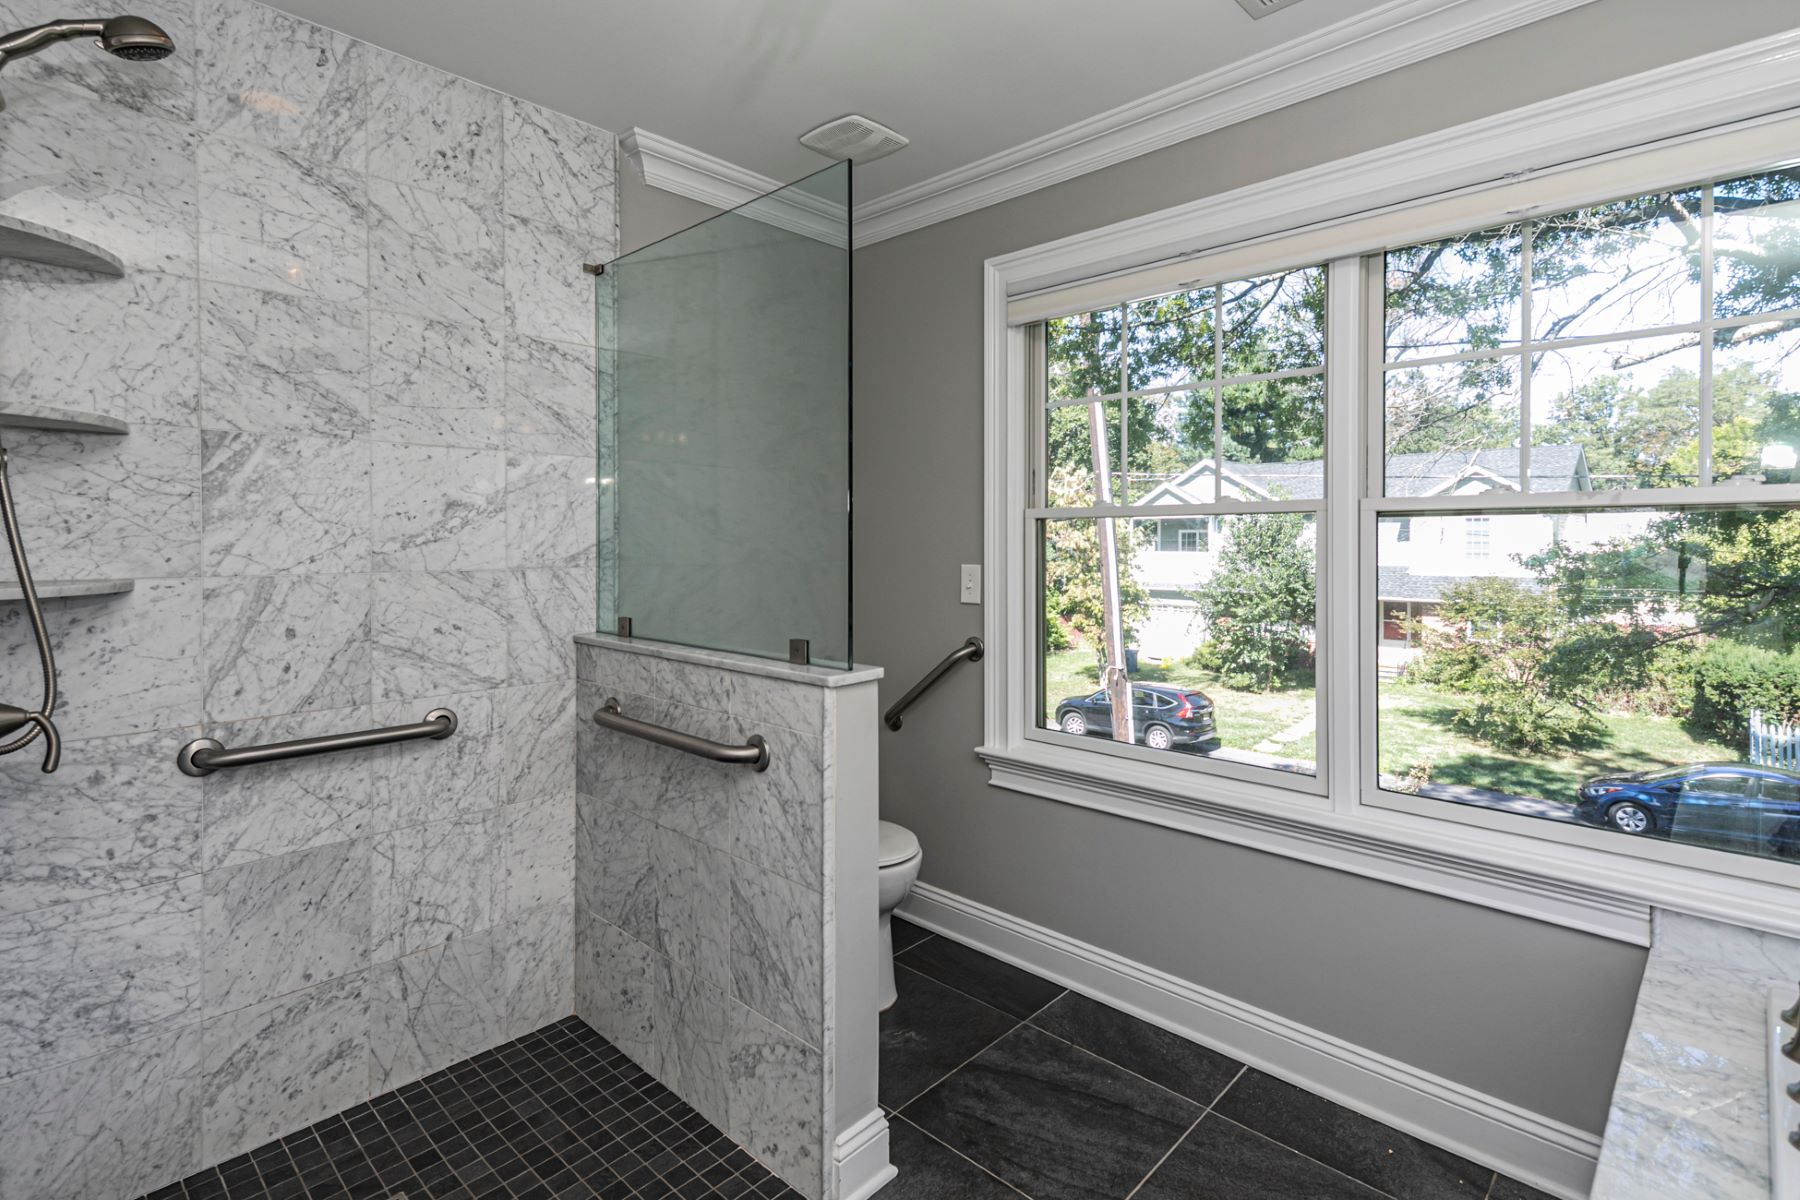 Additional photo for property listing at Well Designed in an Unbeatable Location 45 Hillside Road, Princeton, Nueva Jersey 08540 Estados Unidos